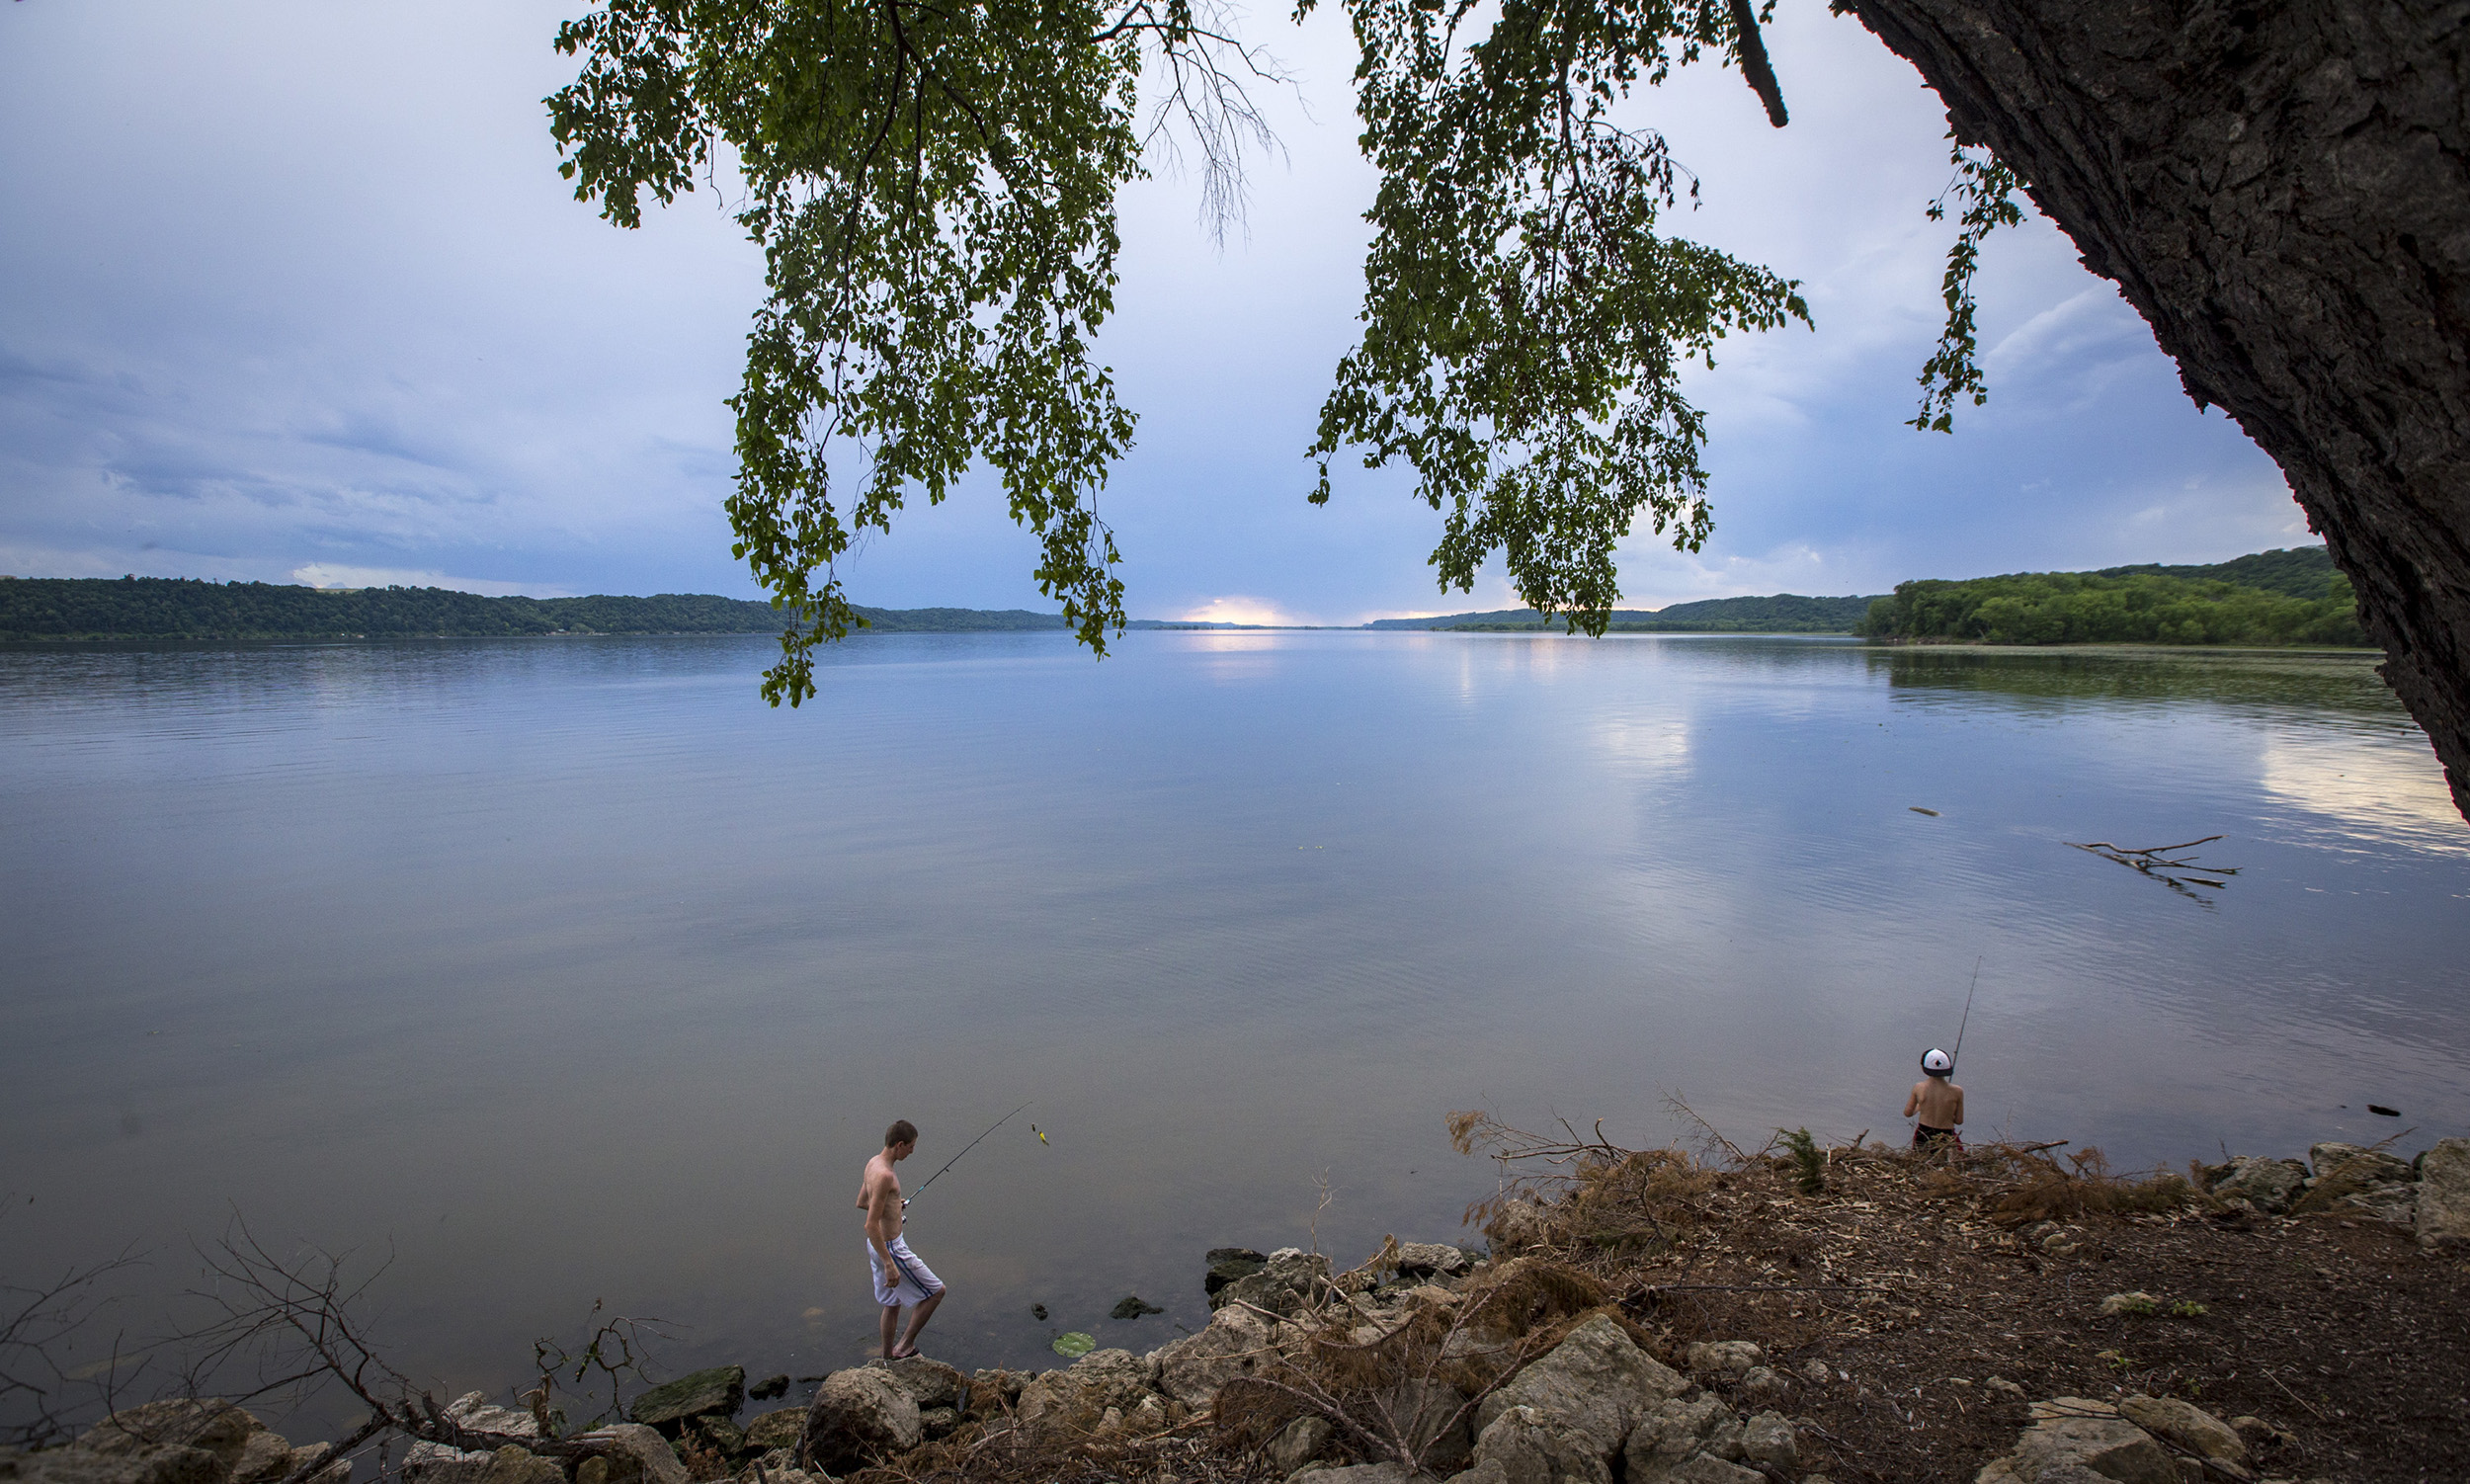 Trea Steele, 17, of Gays Mills, Wisconsin walks over toward Tristan Eastlick, 9, of Platteville, Wisconsin while fishing at Grant River Recreation Area in Potosi, Wisconsin, Thursday, June 15, 2017. The boys were camping with family at the campground for the first time and managed to catch a half dozen fish in just about an hour of fishing with worms.